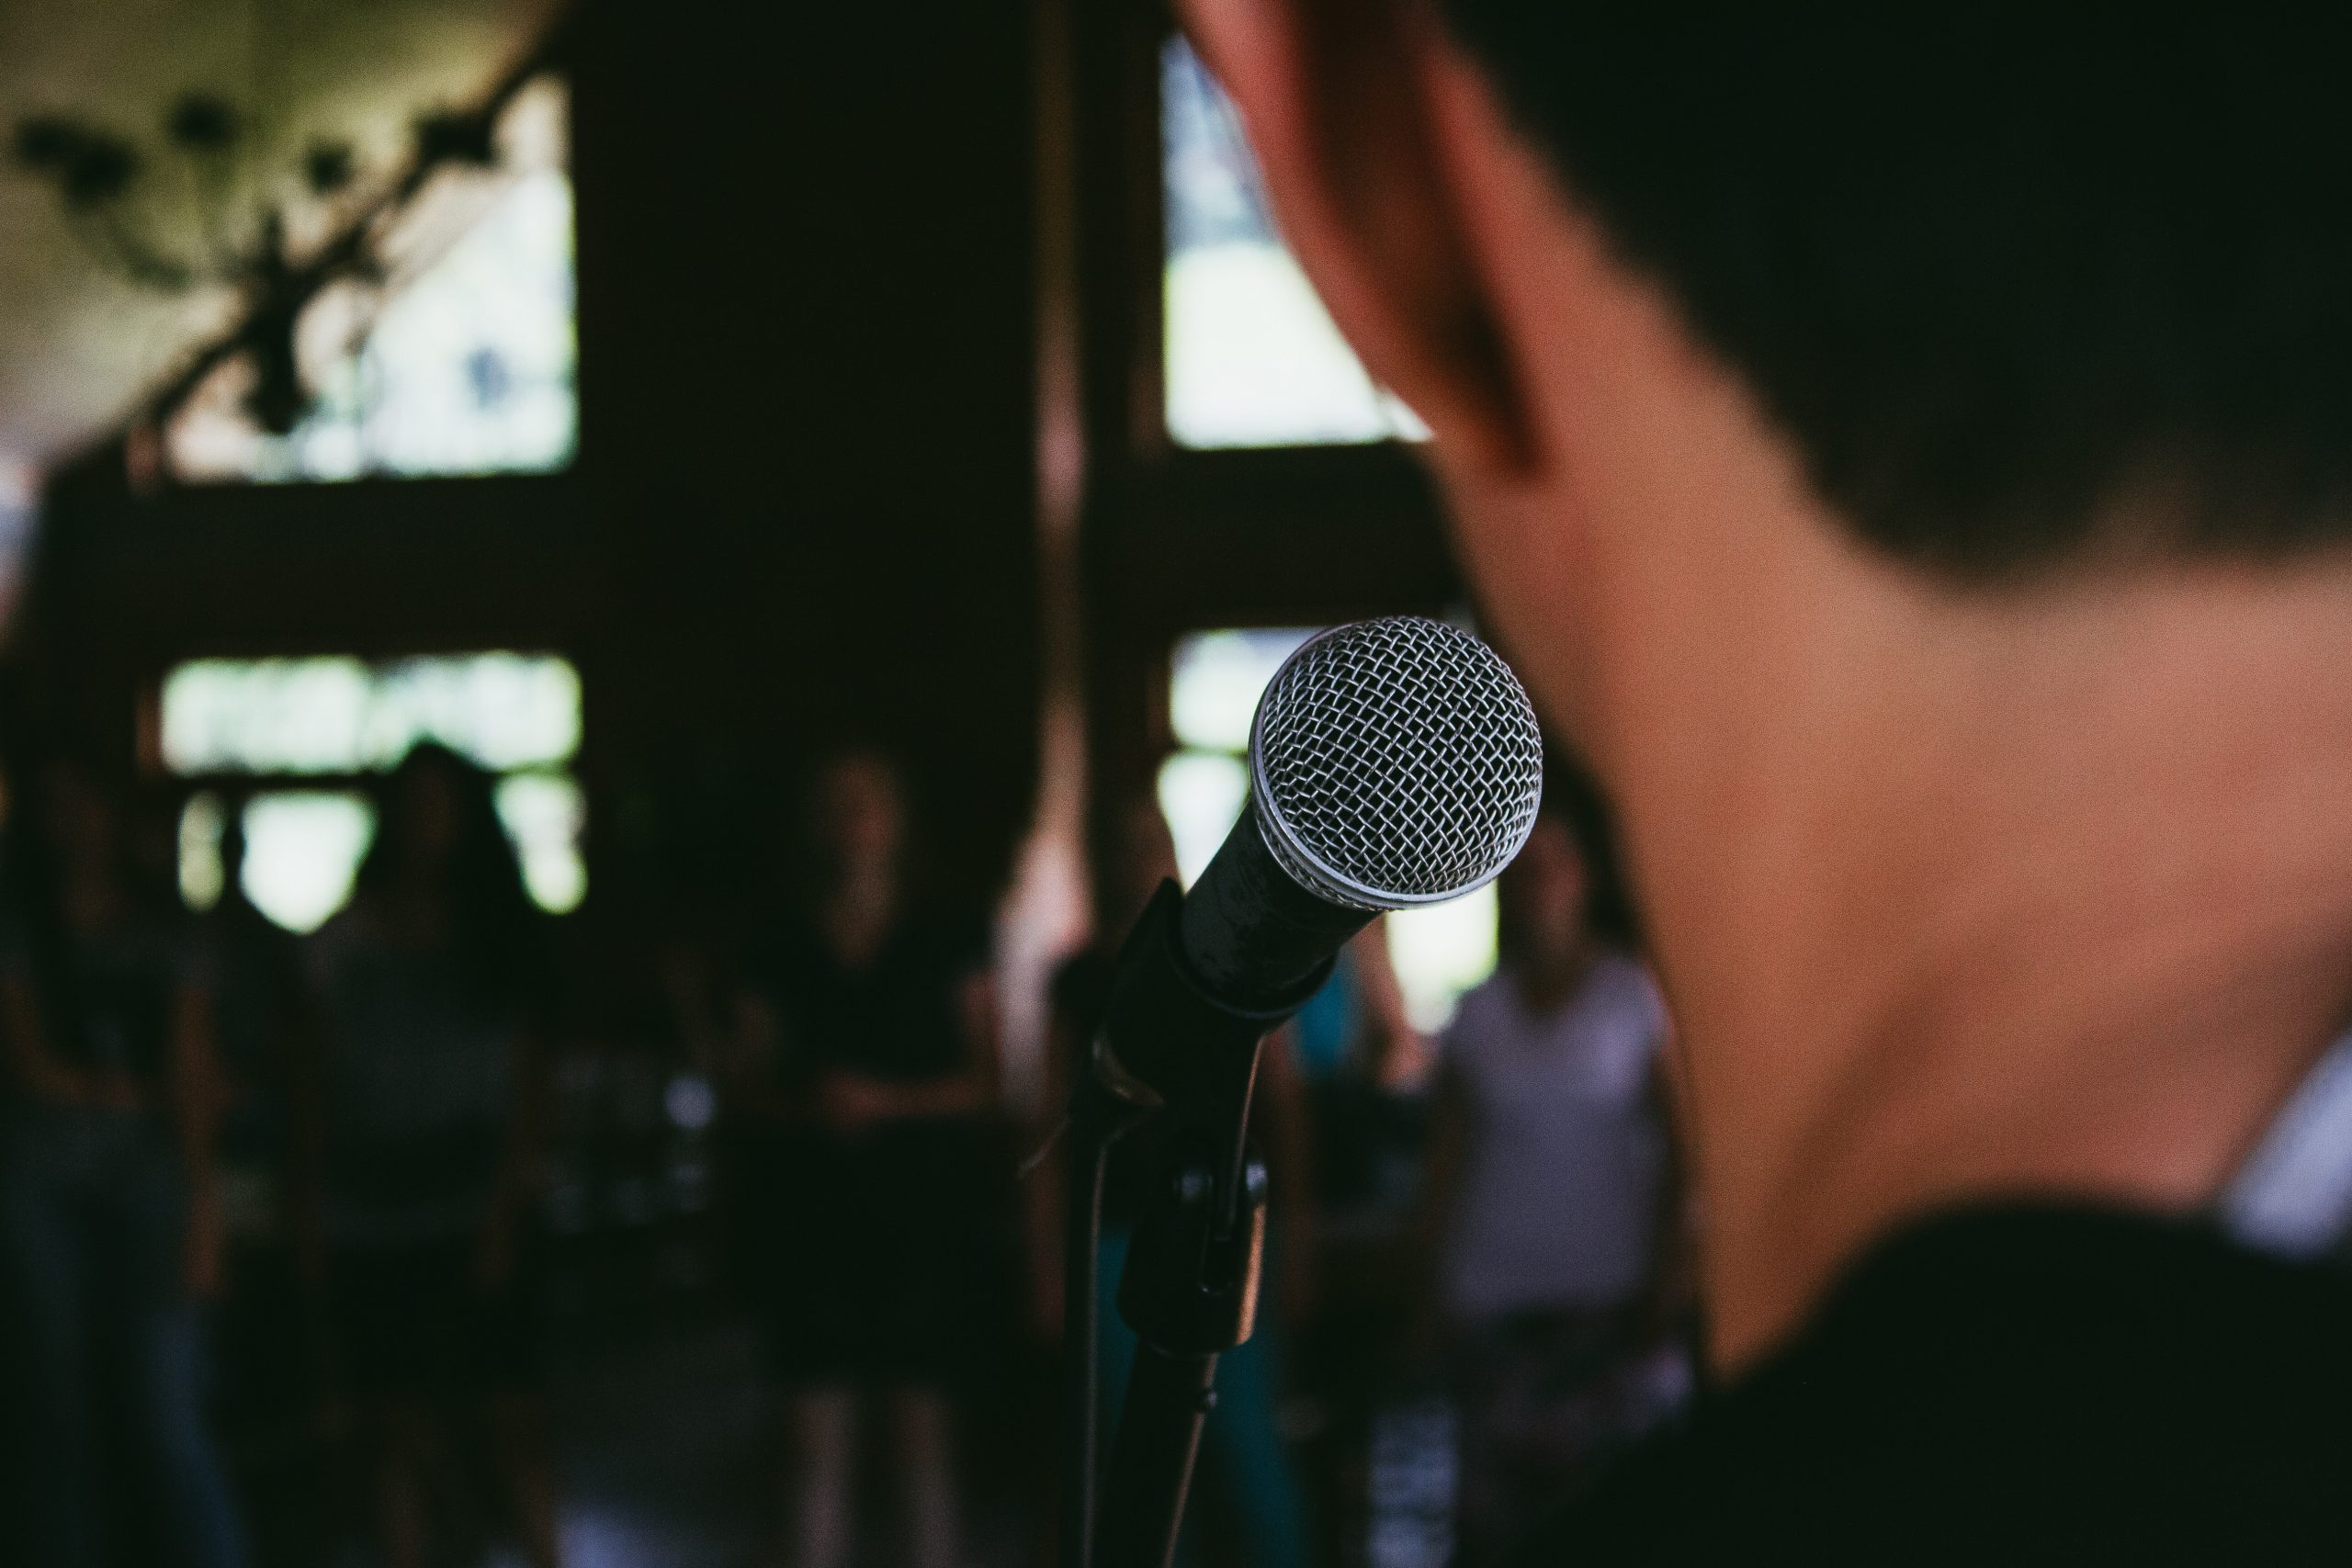 PREPARE TO BE A BETTER SPEAKER